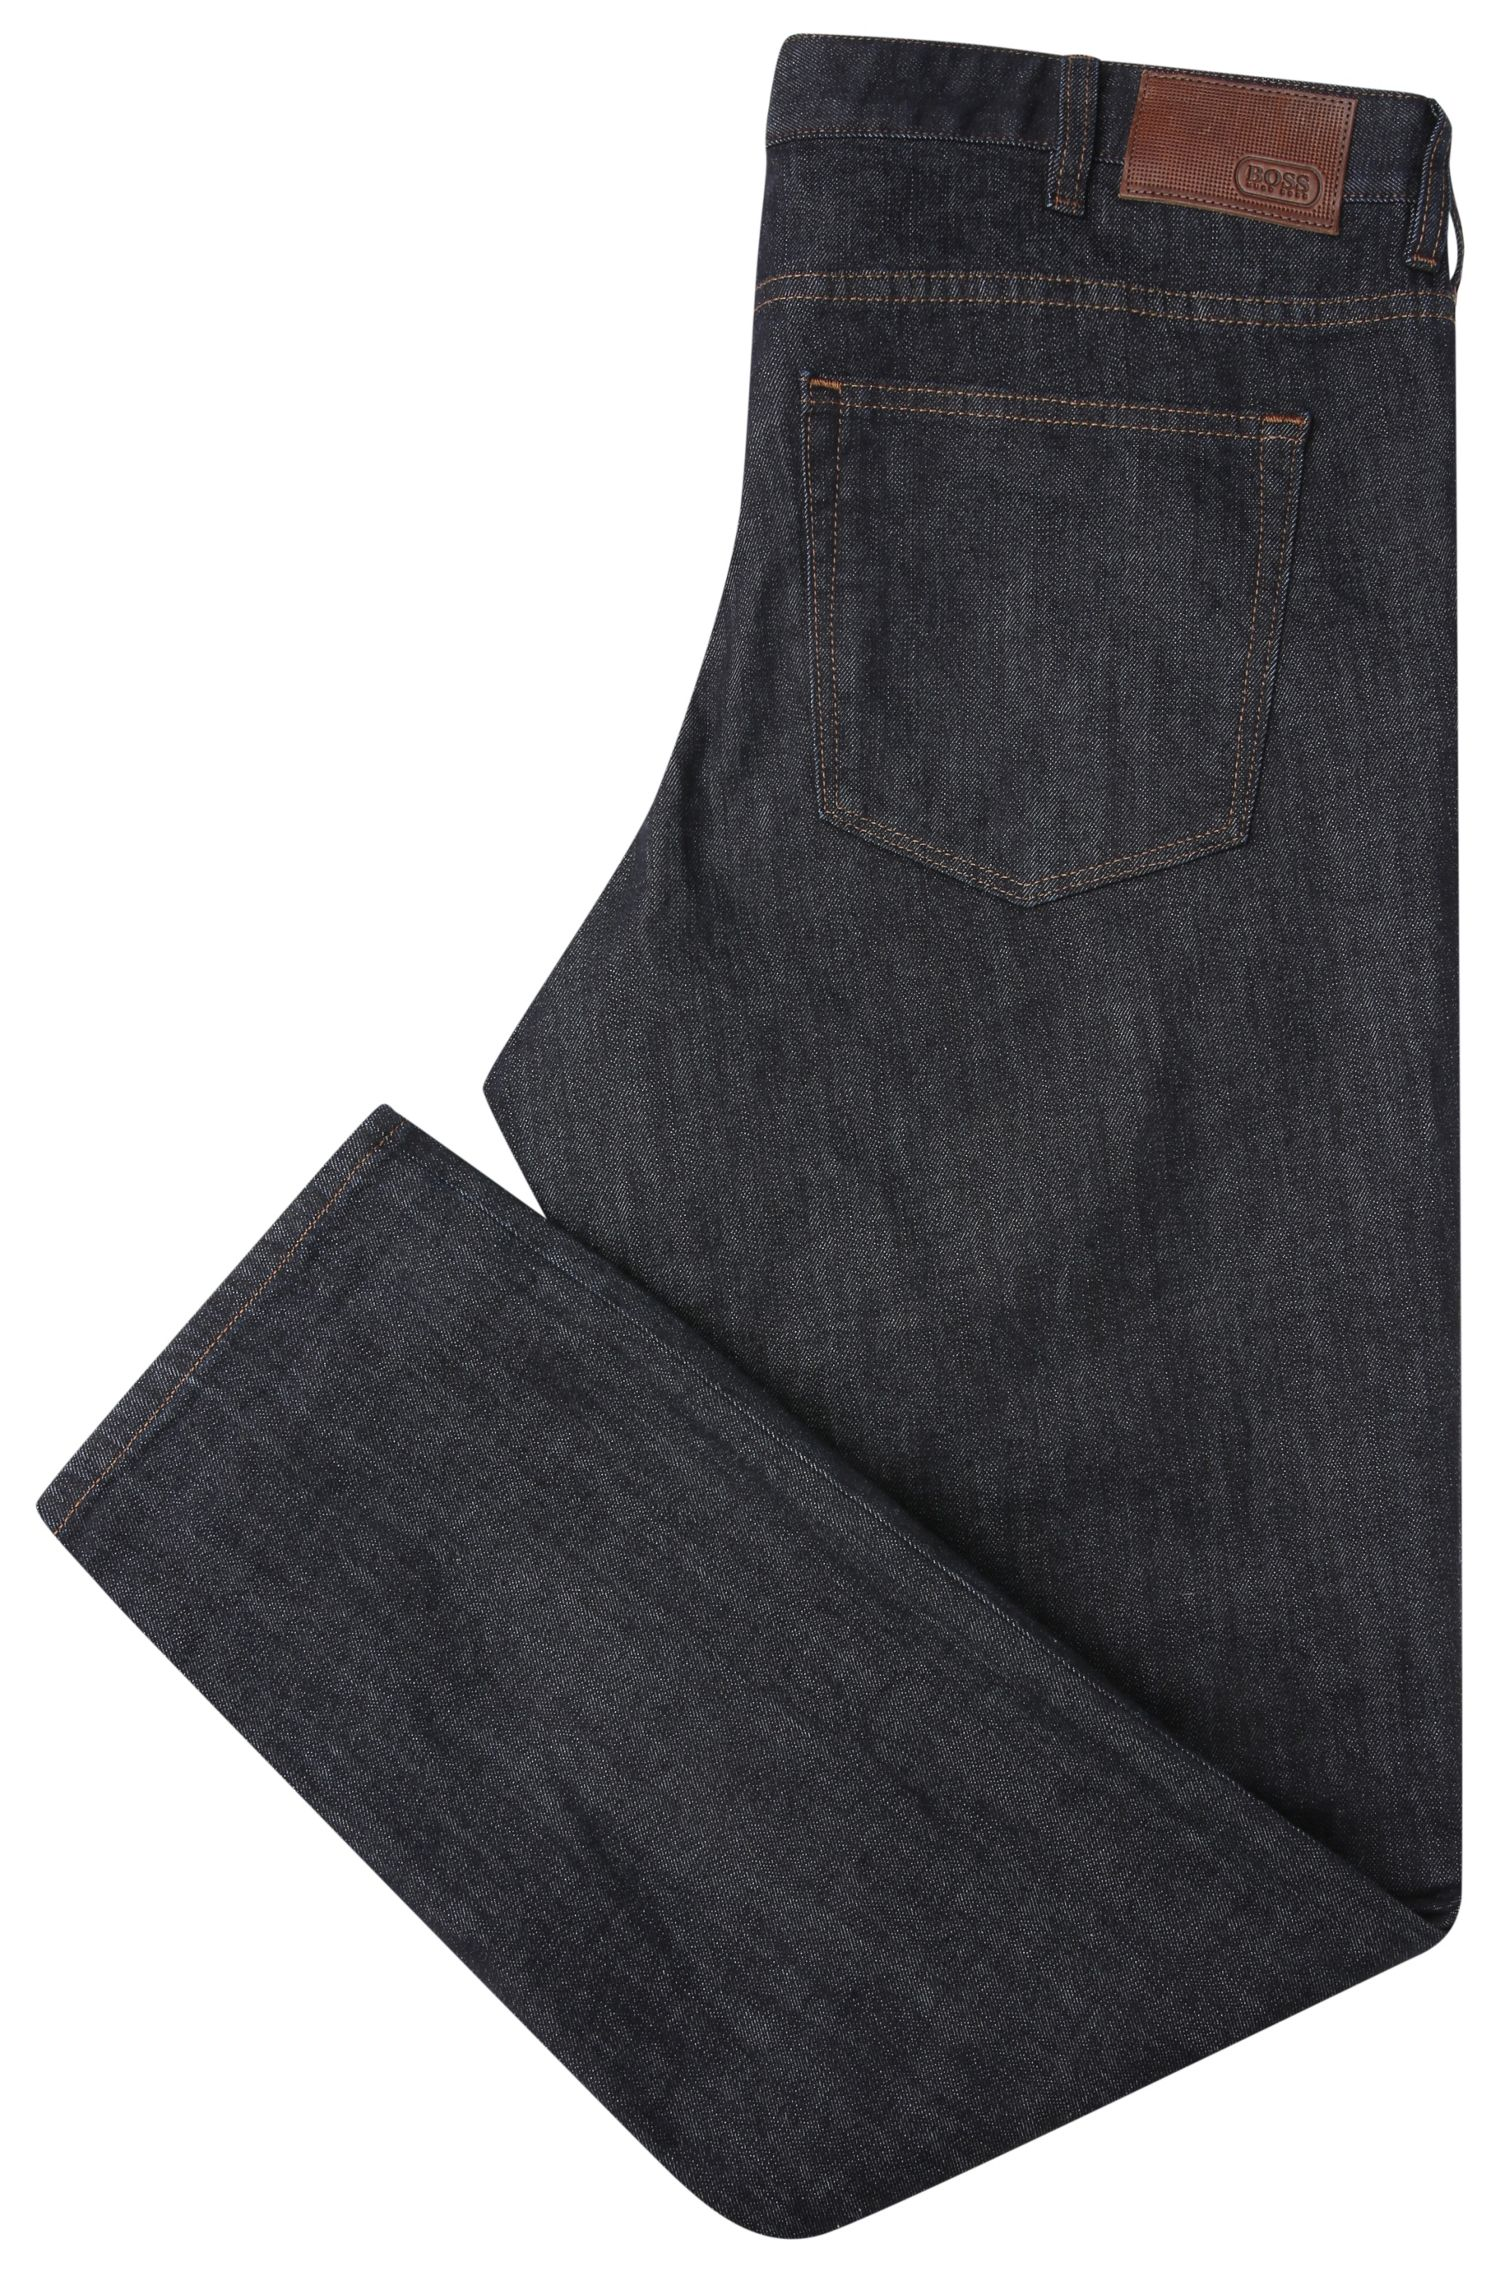 Jeans Regular Fit en coton extensible structuré : « C-B4 »